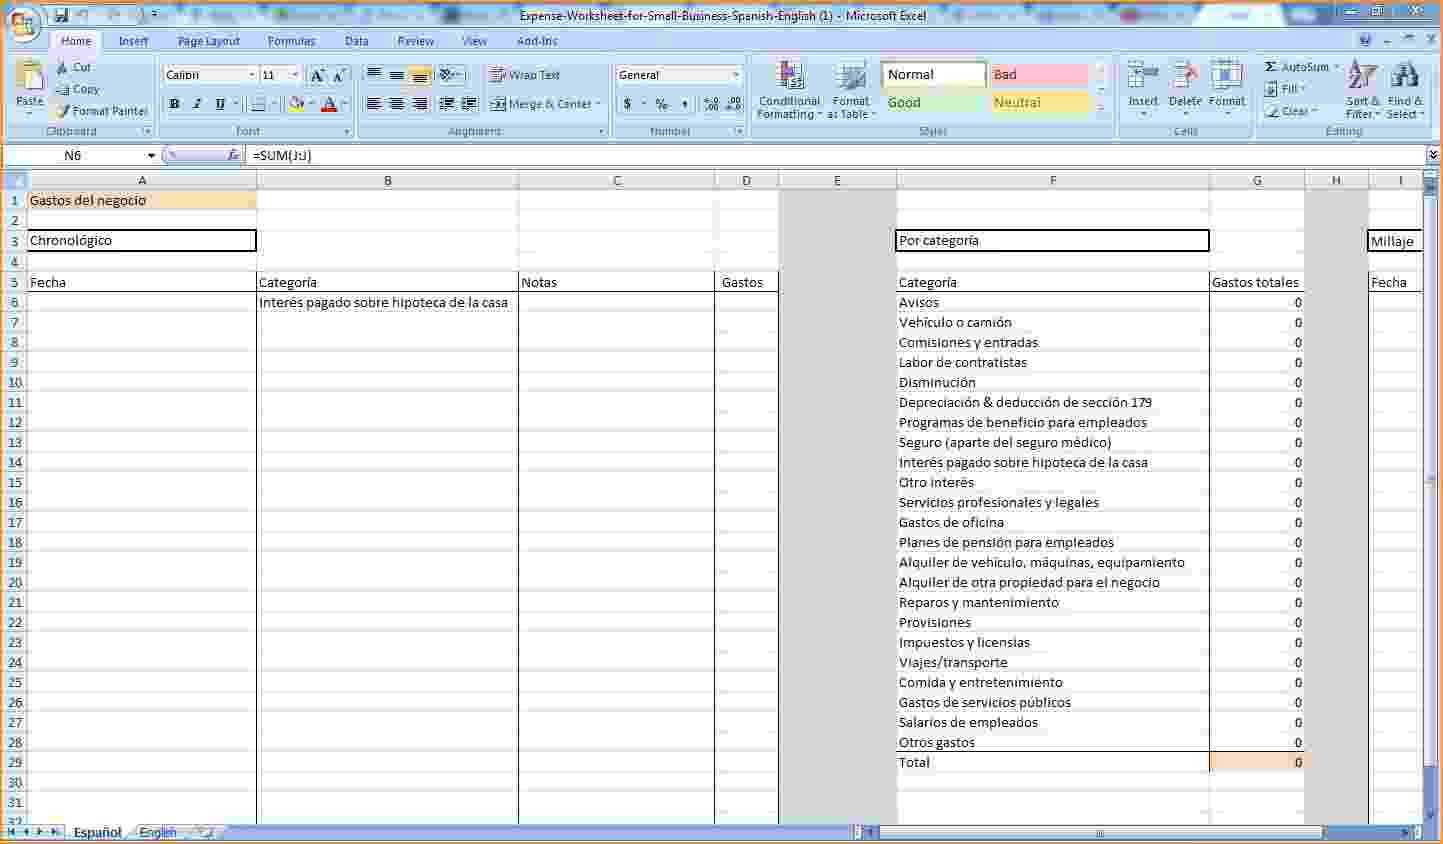 Spreadsheet To Track Expenses For Small Business Throughout Expense Tracking Spreadsheet For Small Business And Expense Tracking